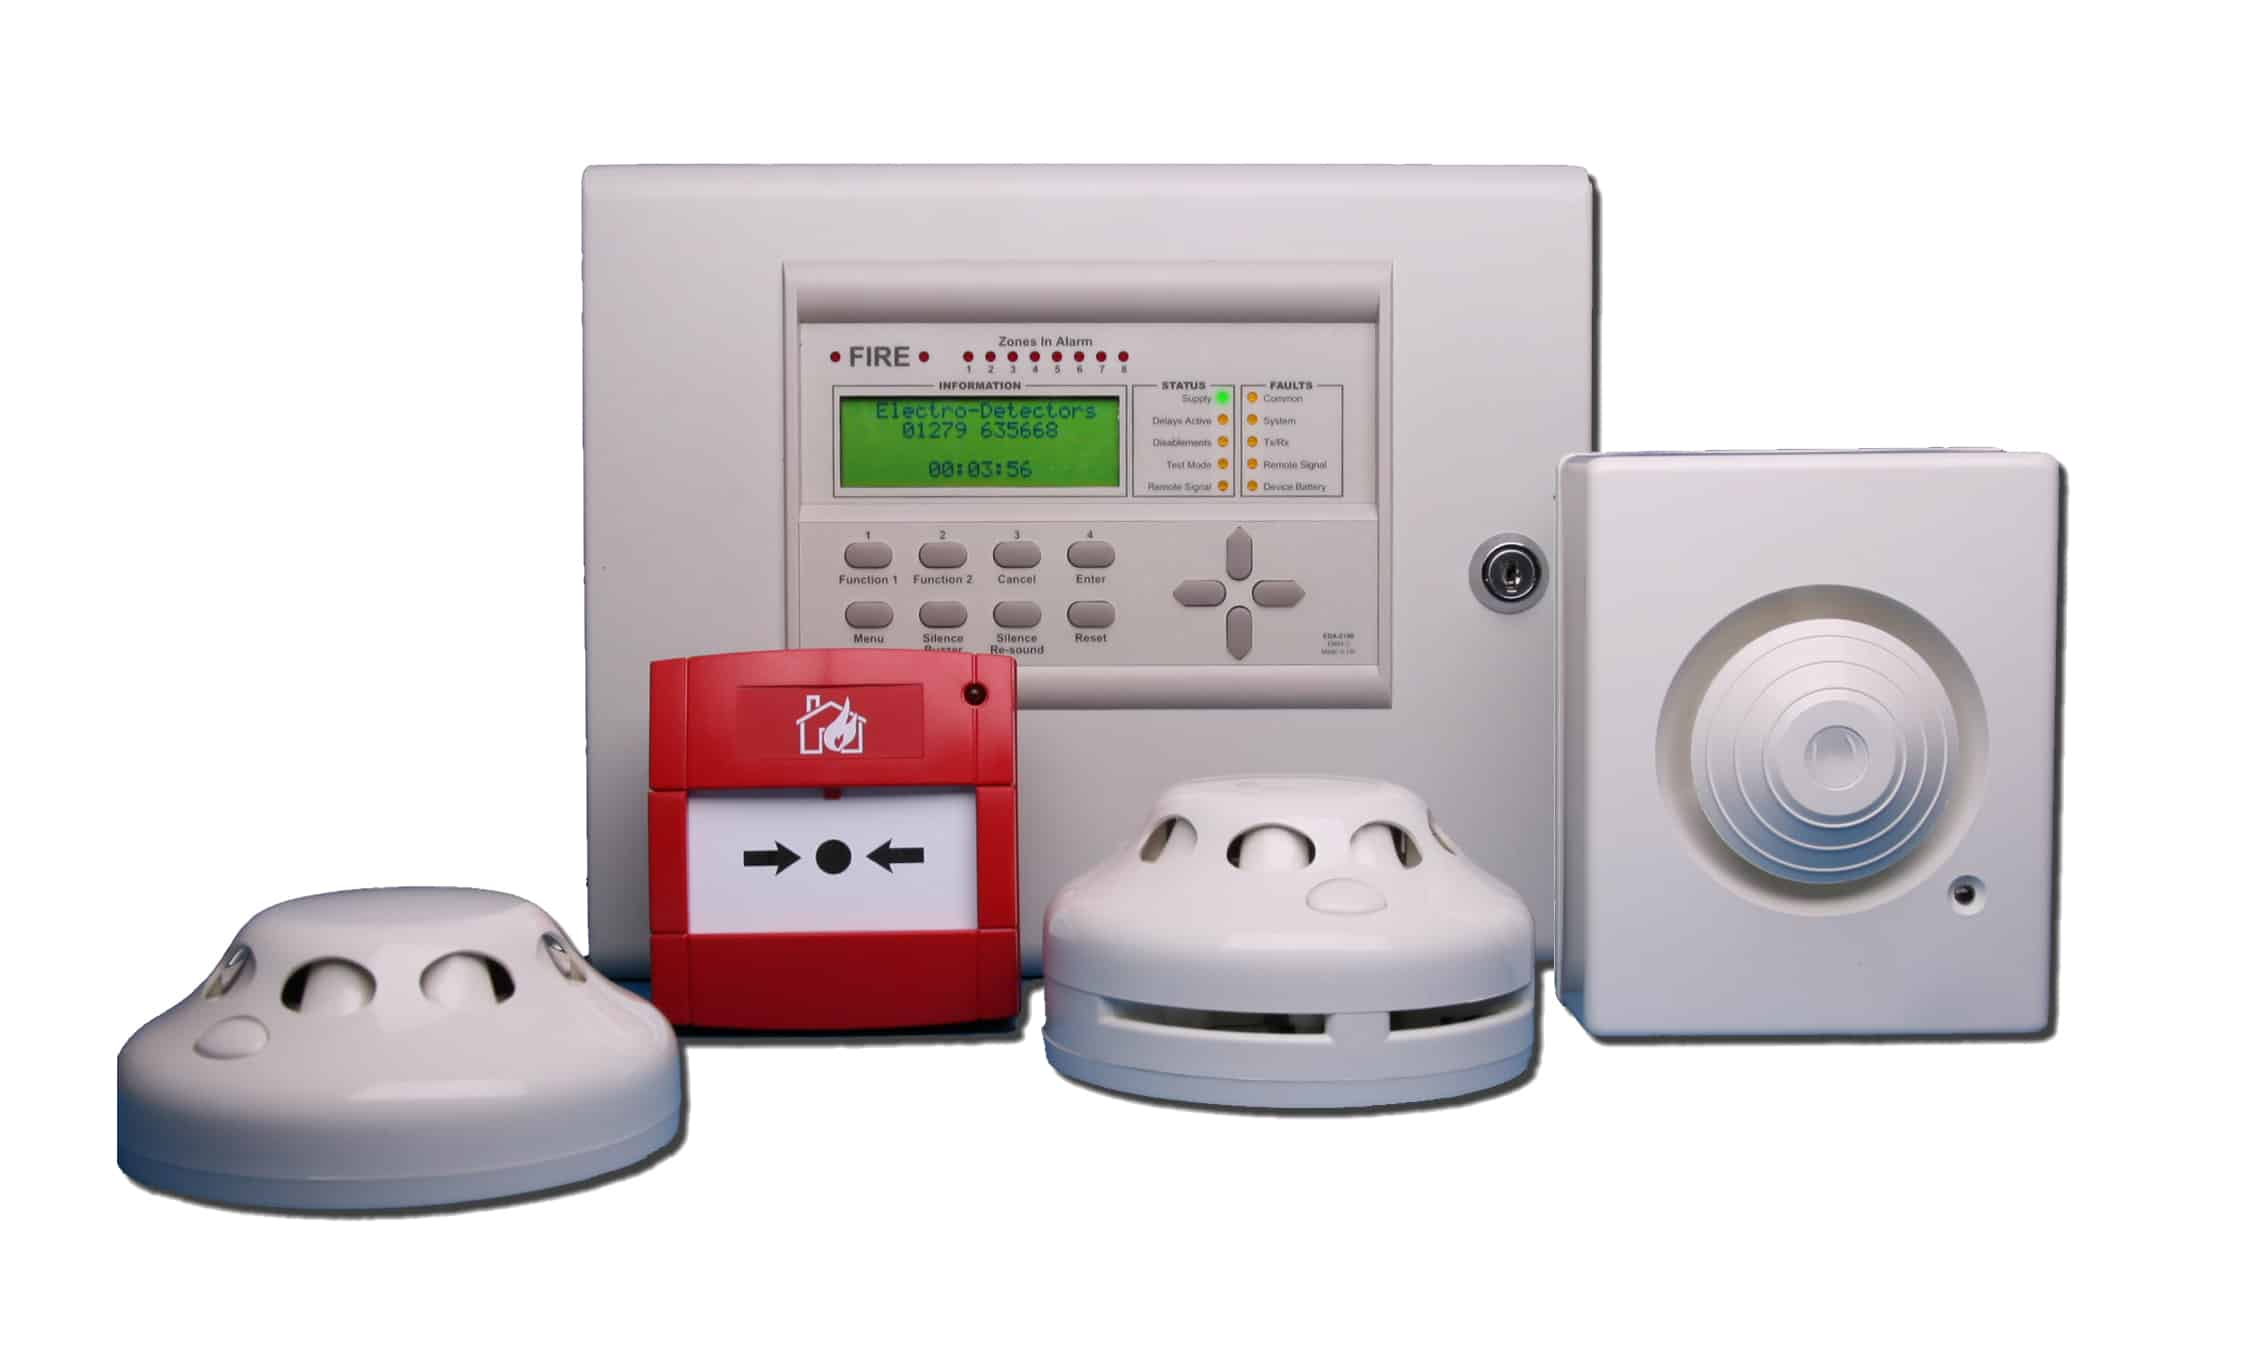 Fire alarm systems from experts surrey london south east - Sistema de alarma ...